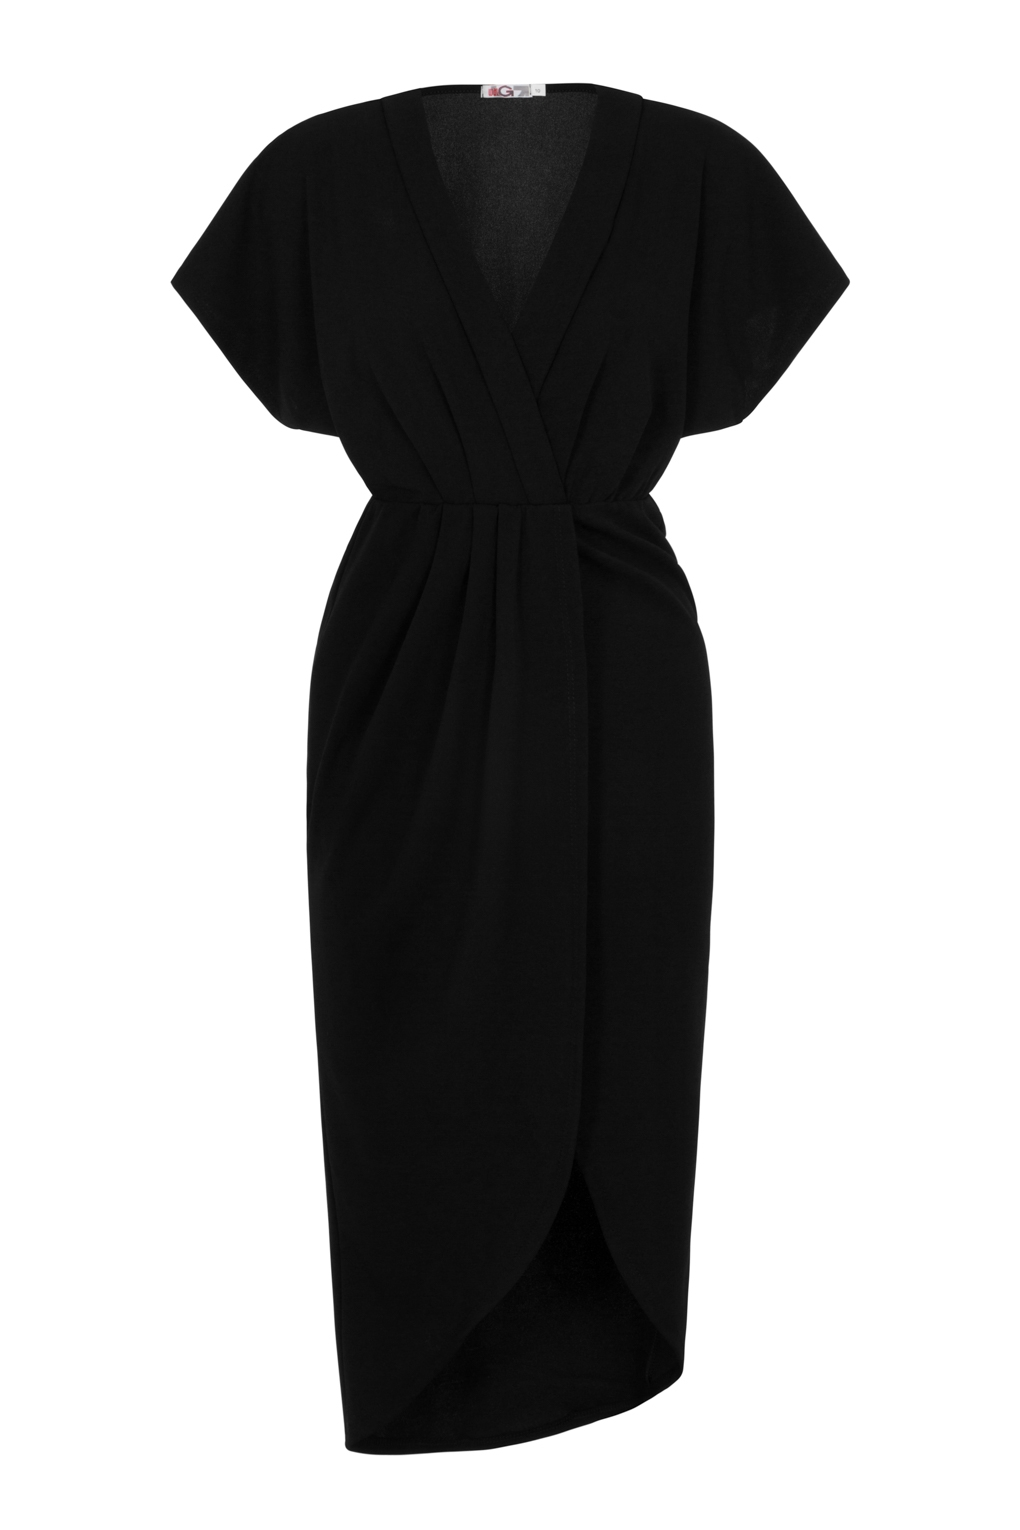 16ef535c83 WalG Batwing Wrap Black Midi Dress